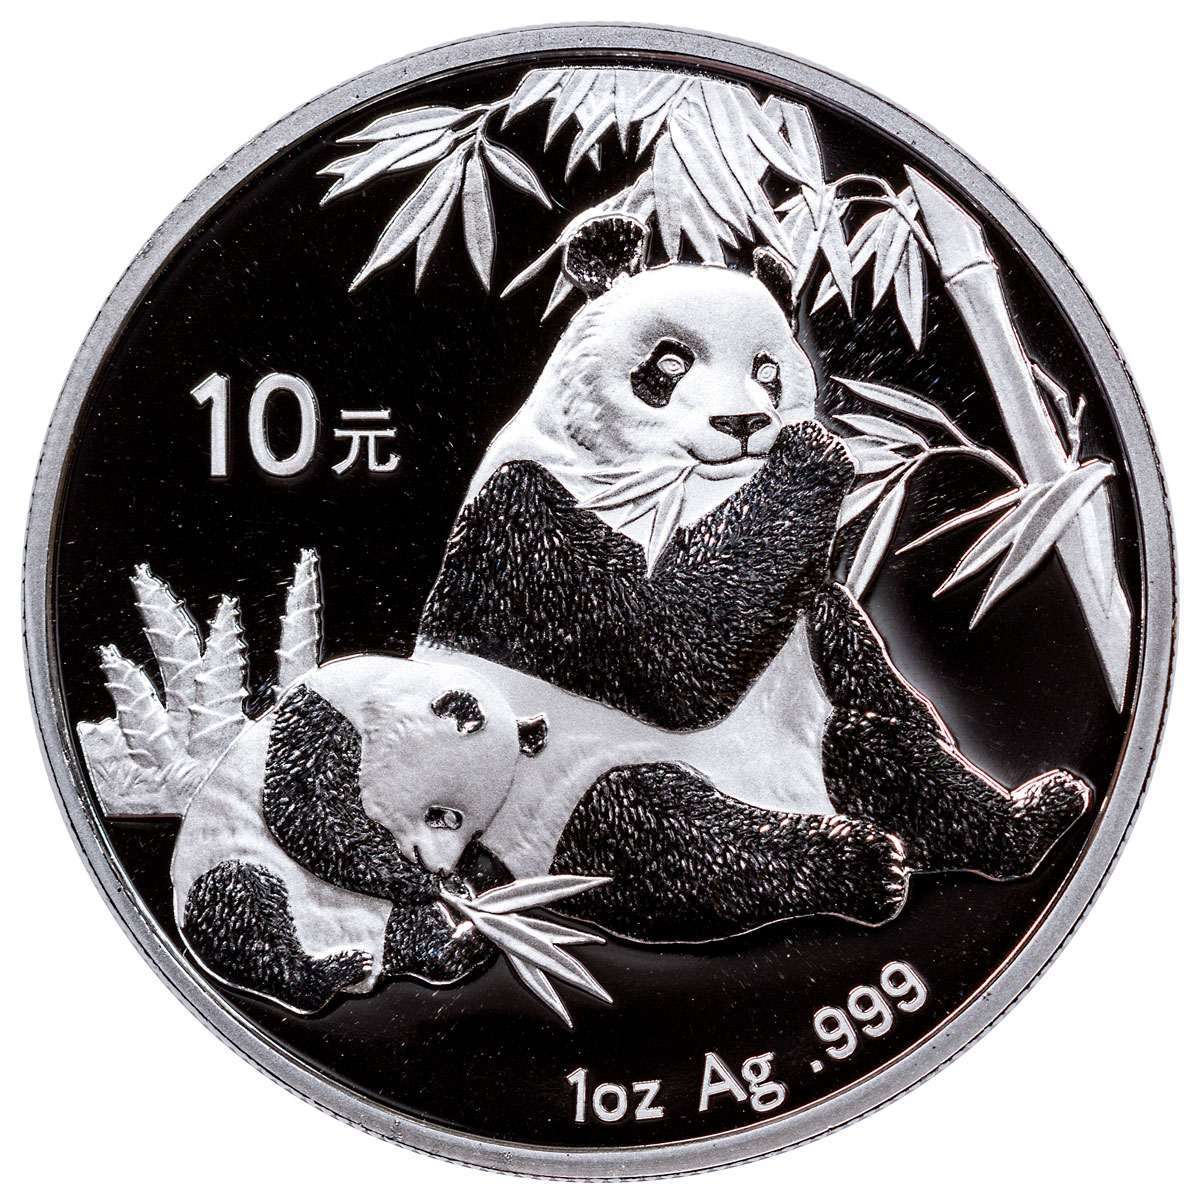 2007 China 1 oz Silver Panda ¥10 Coin BU